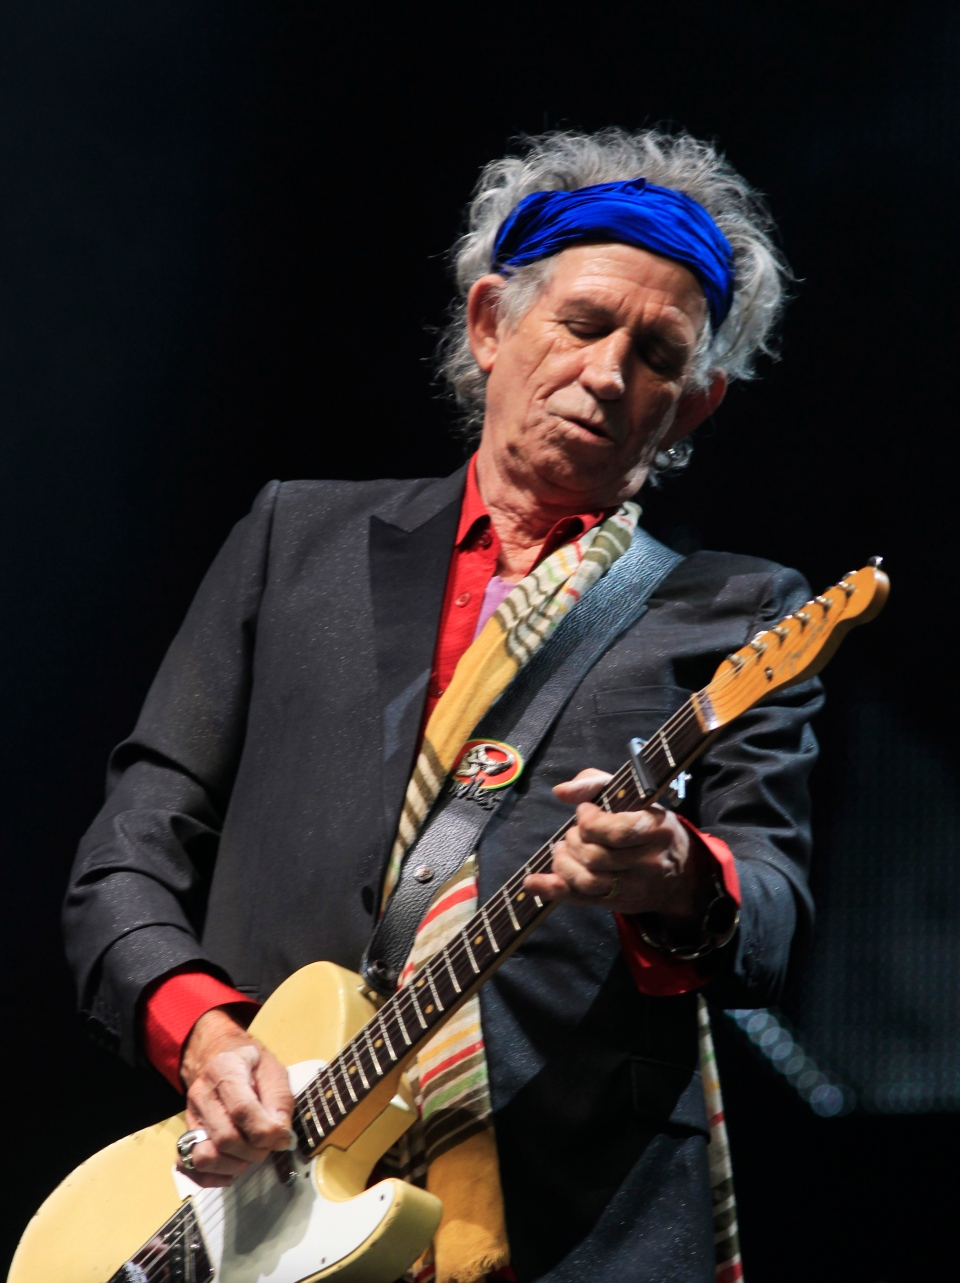 Keith Richards of The Rolling Stones performs at Glastonbury, England on Saturday, June 29, 2013. (Jim Ross / Invision)